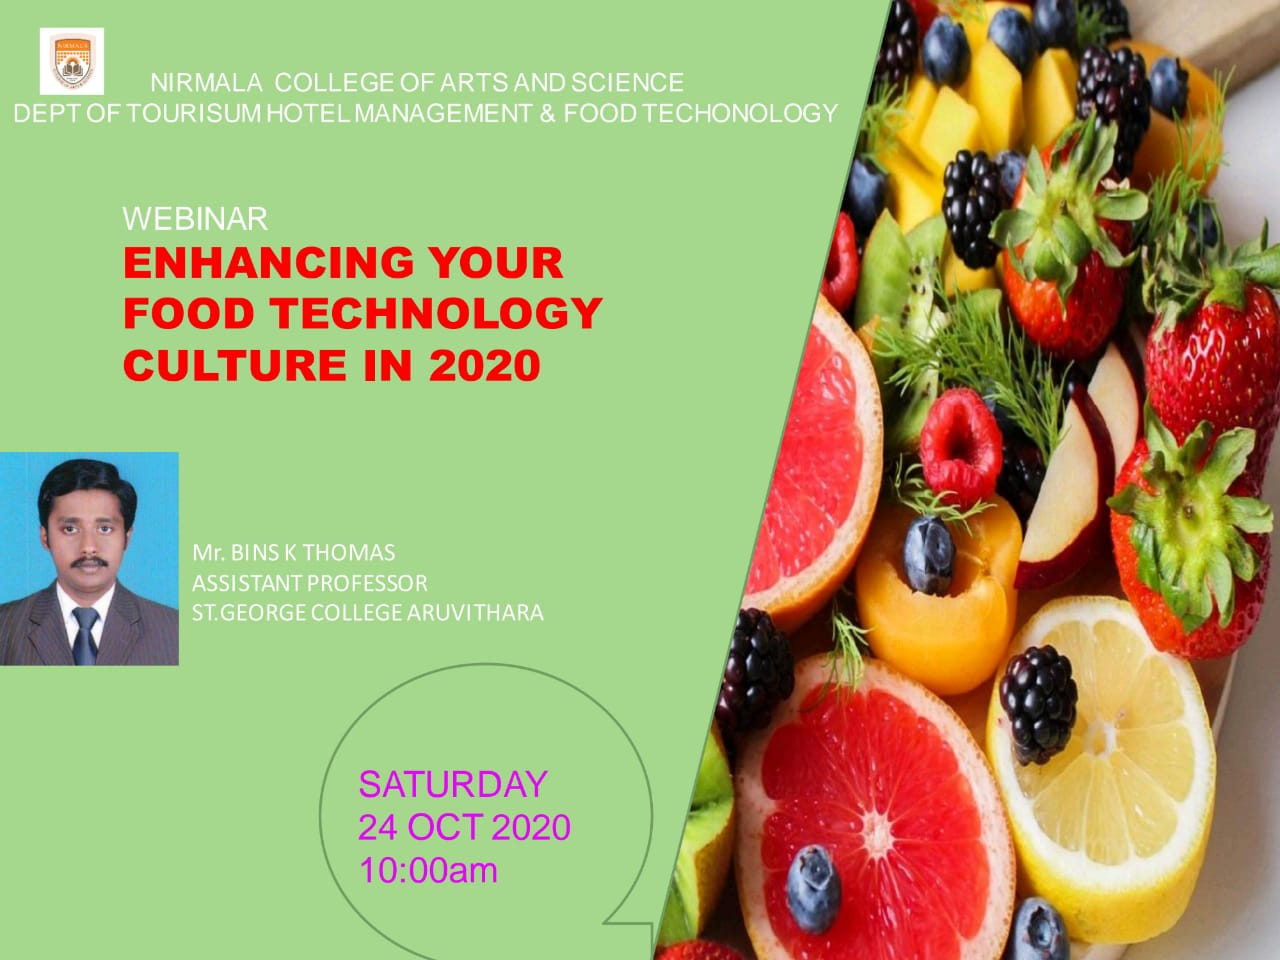 Webinar-Enhancing Your Food Technology Culture in 2020